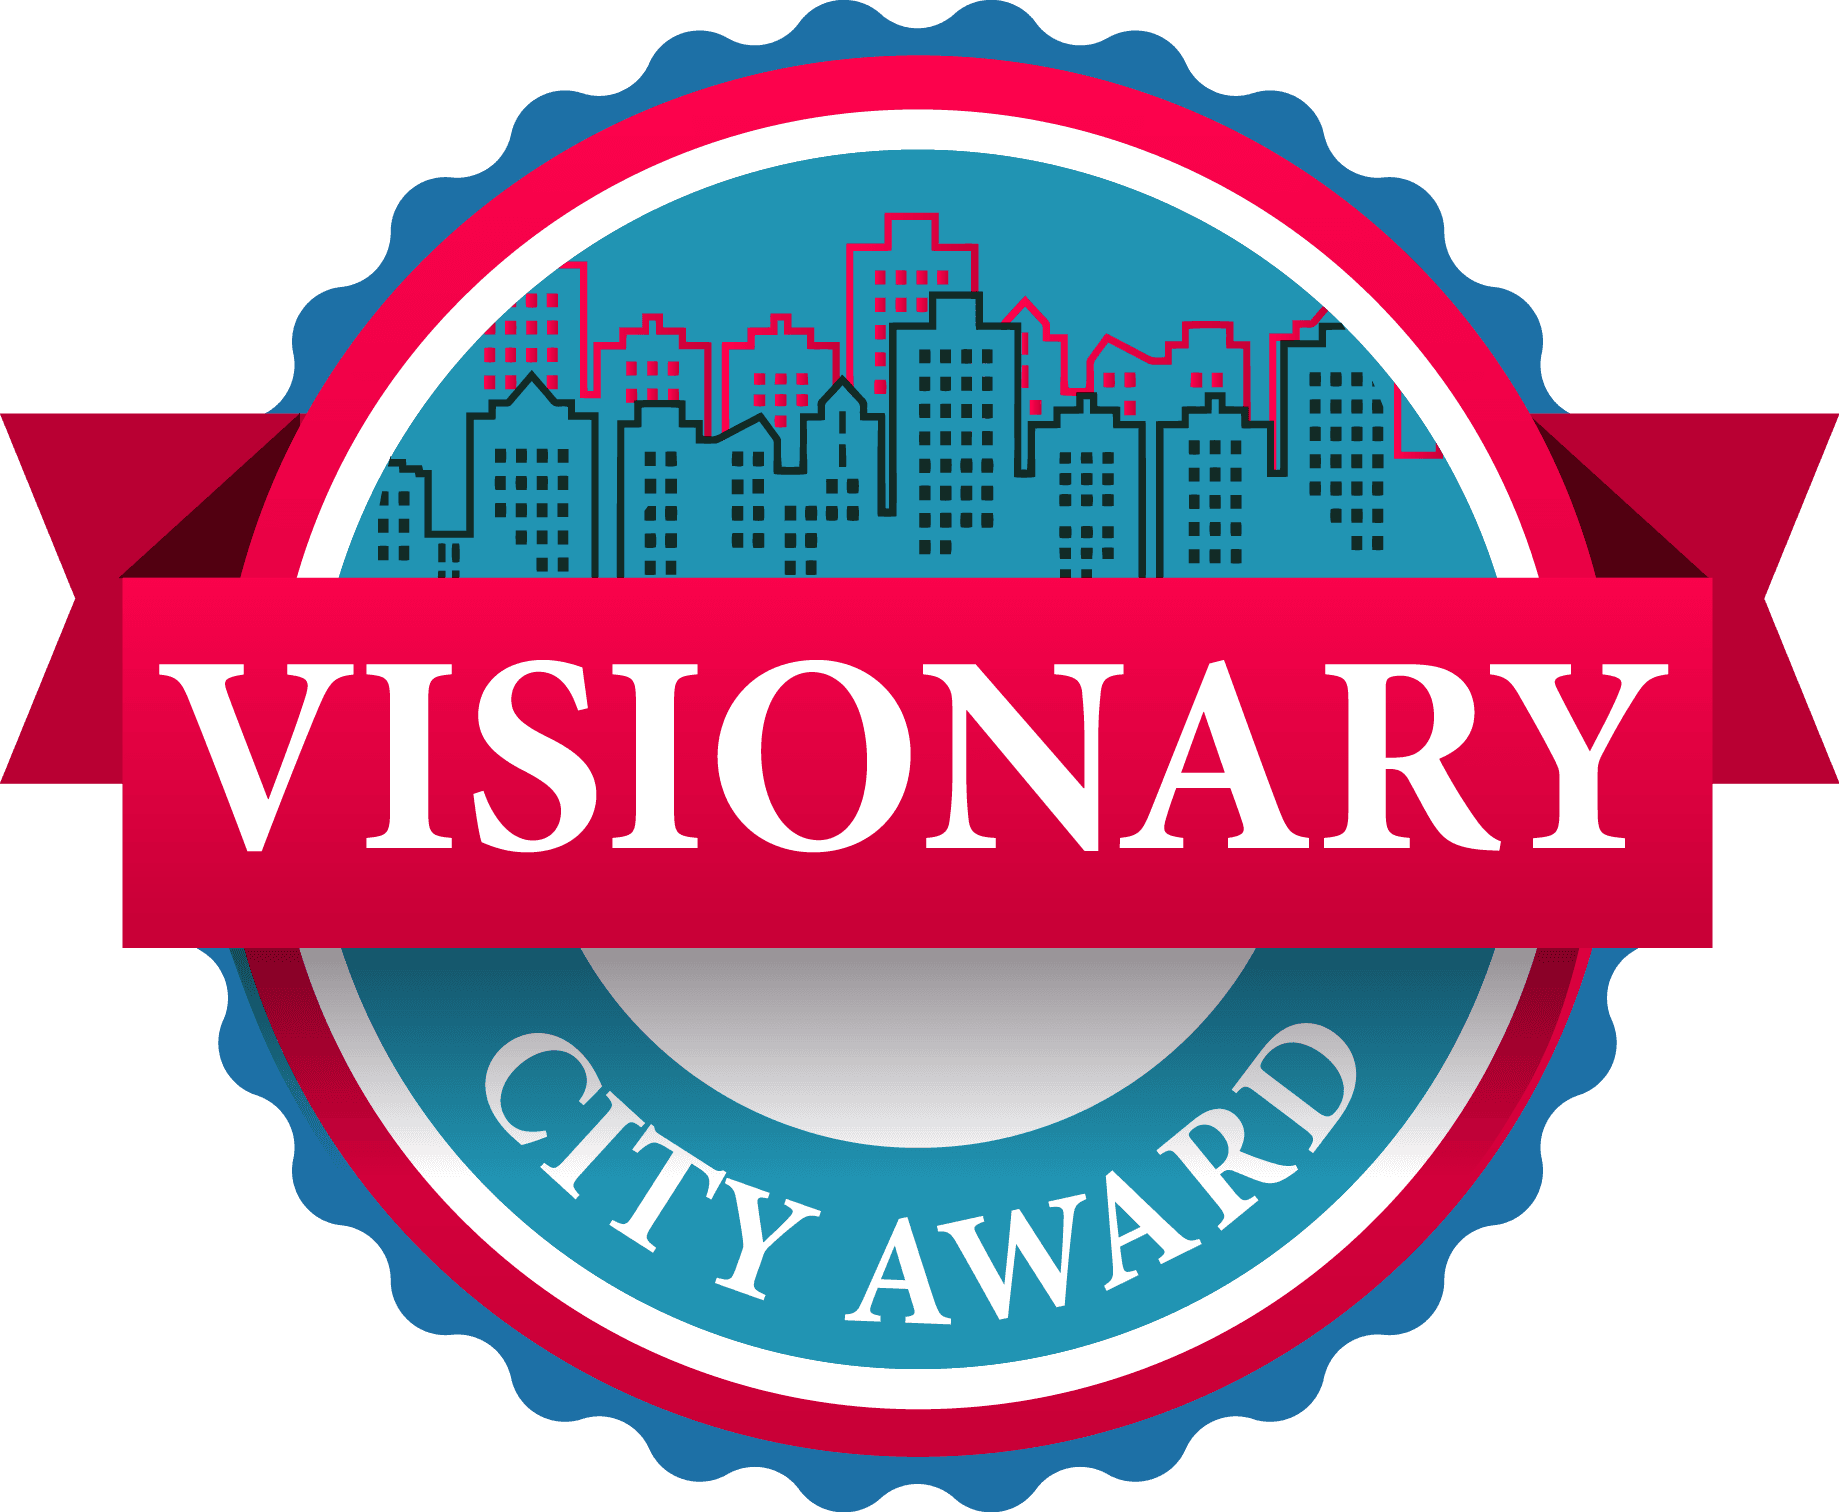 logo Visionary City Award